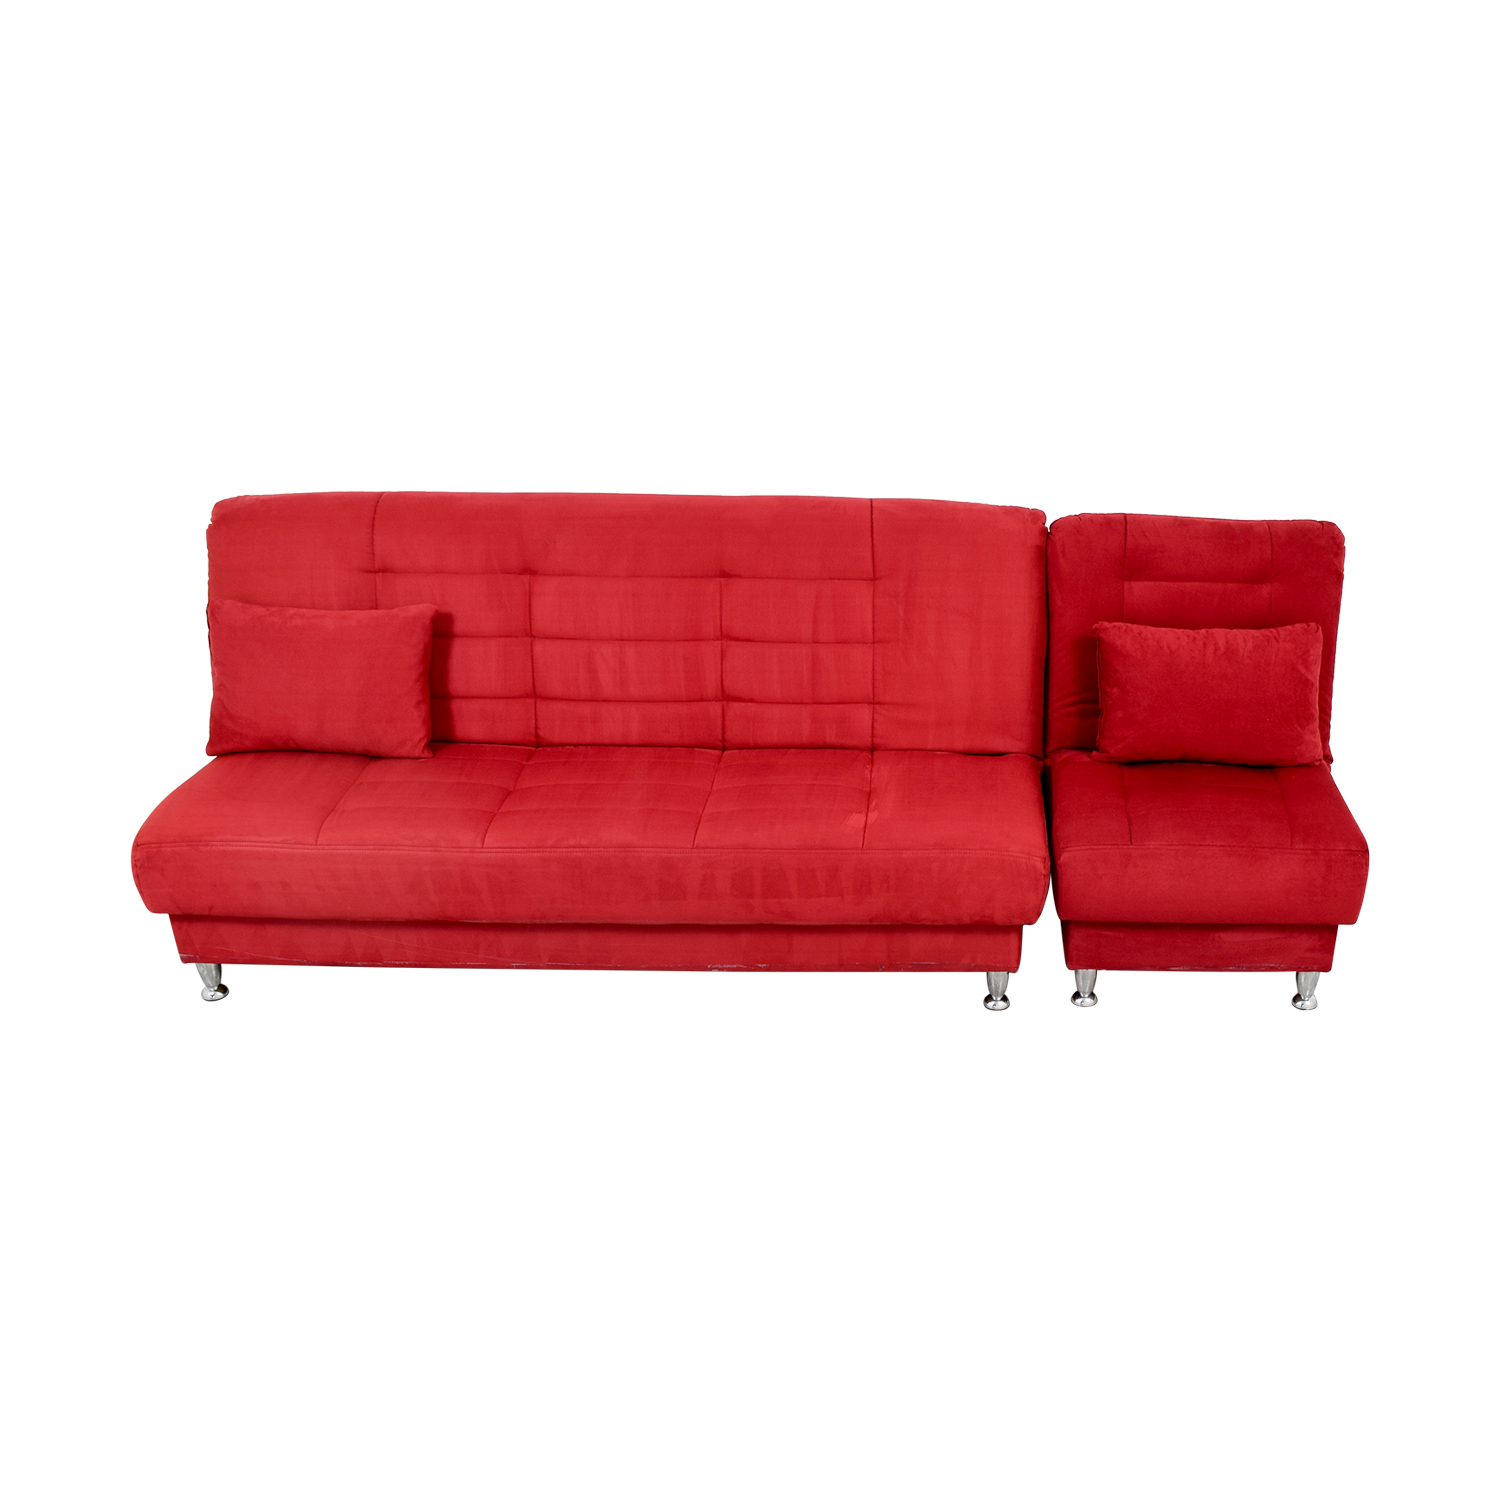 Red sofa chair gray scarlett tufted sofa set rouge red Red and grey sofa